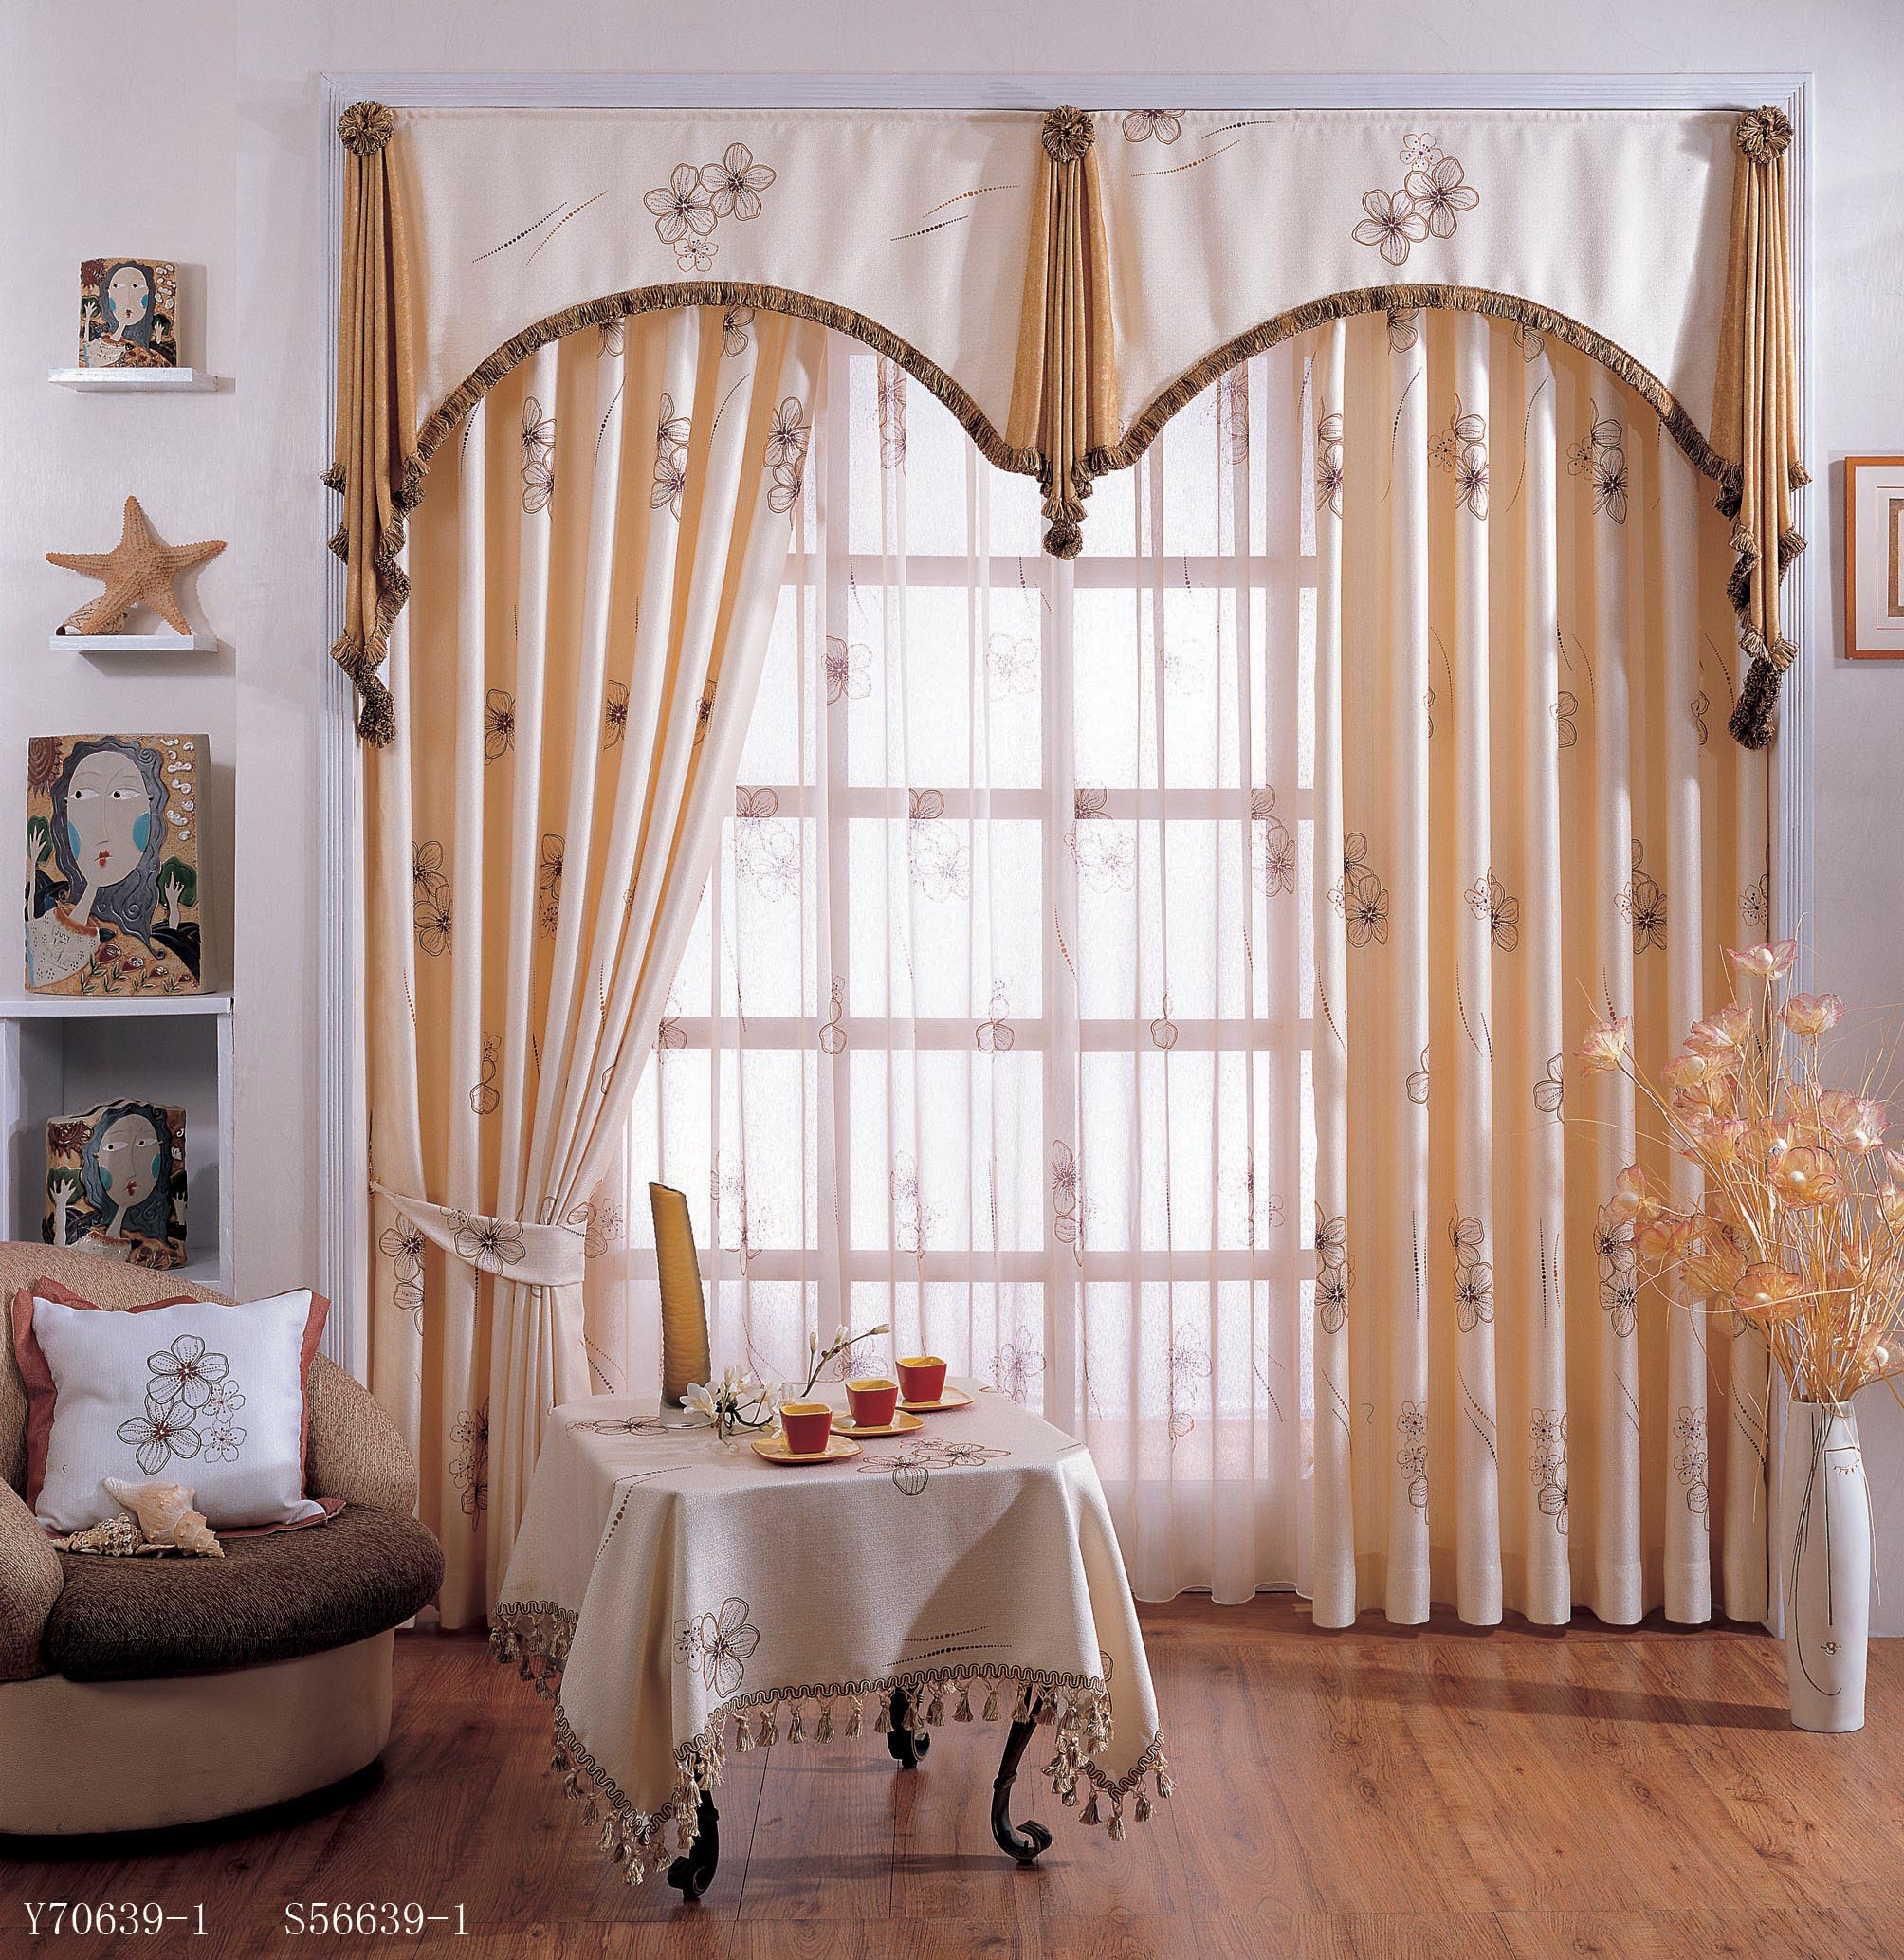 Home Design Ideas Curtains 28 Images Home Curtain Simple: Curtain Valances For Living Room